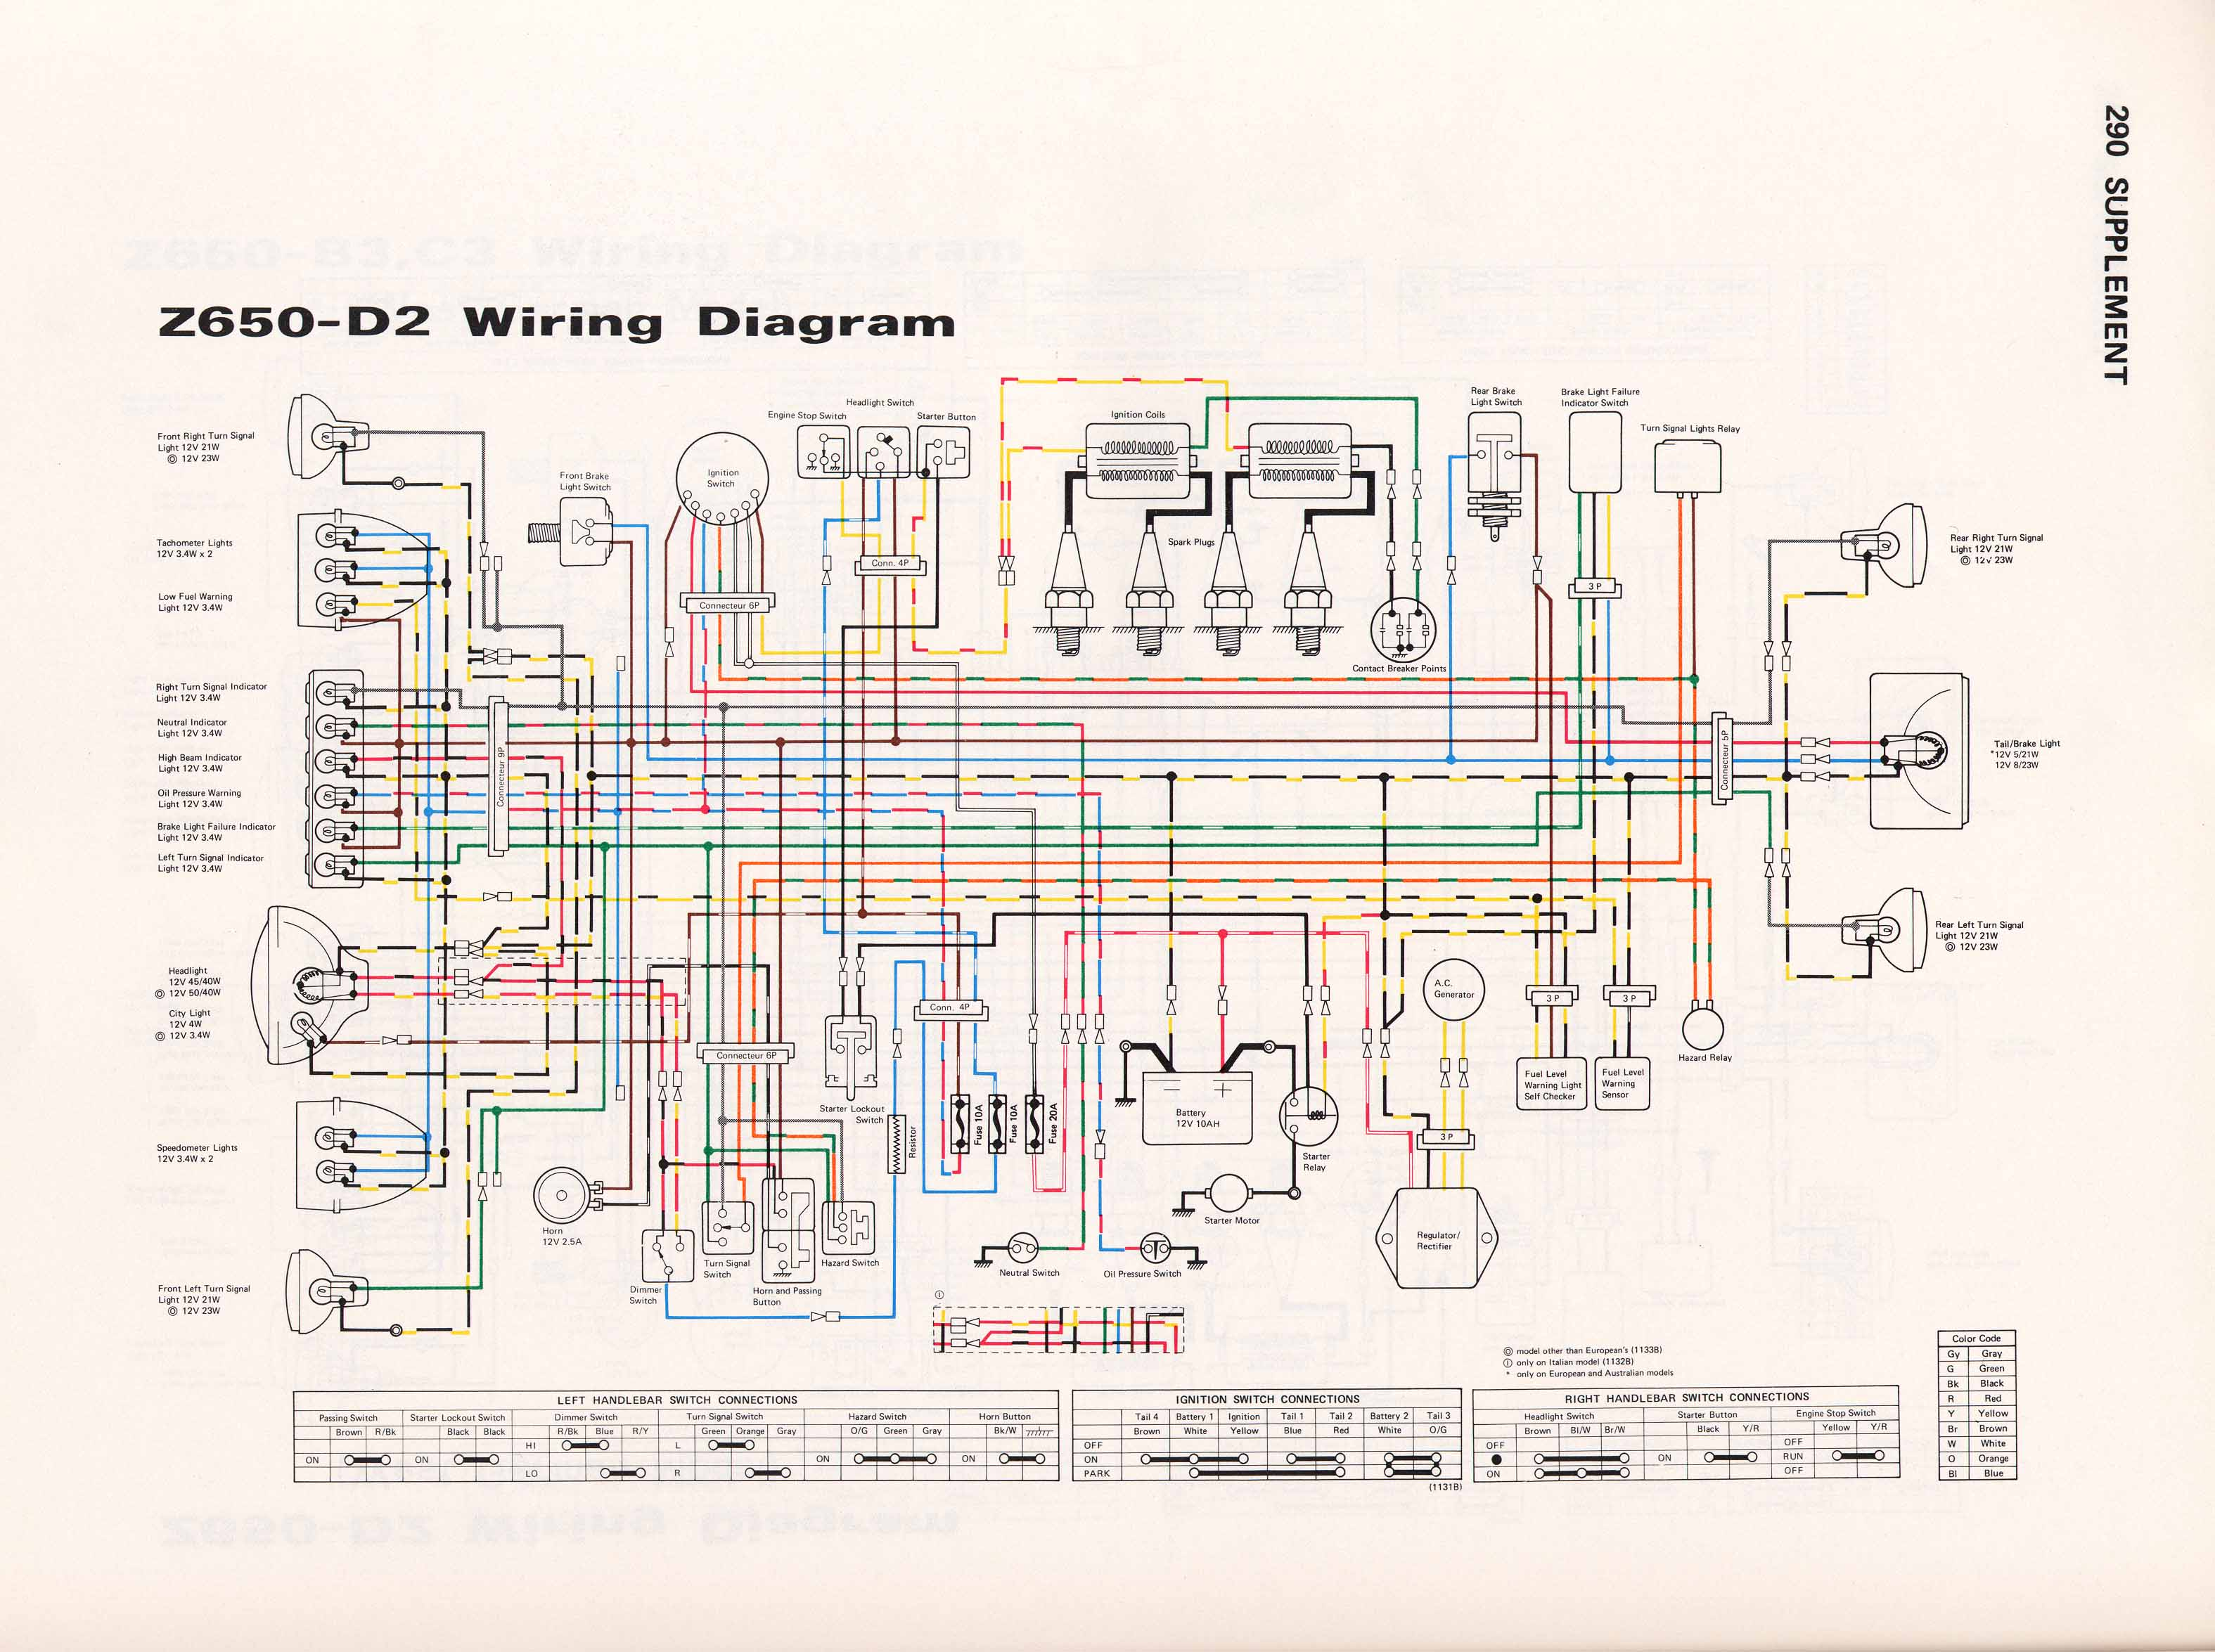 Kz650 Wiring Diagram - Wiring Diagrams Load on